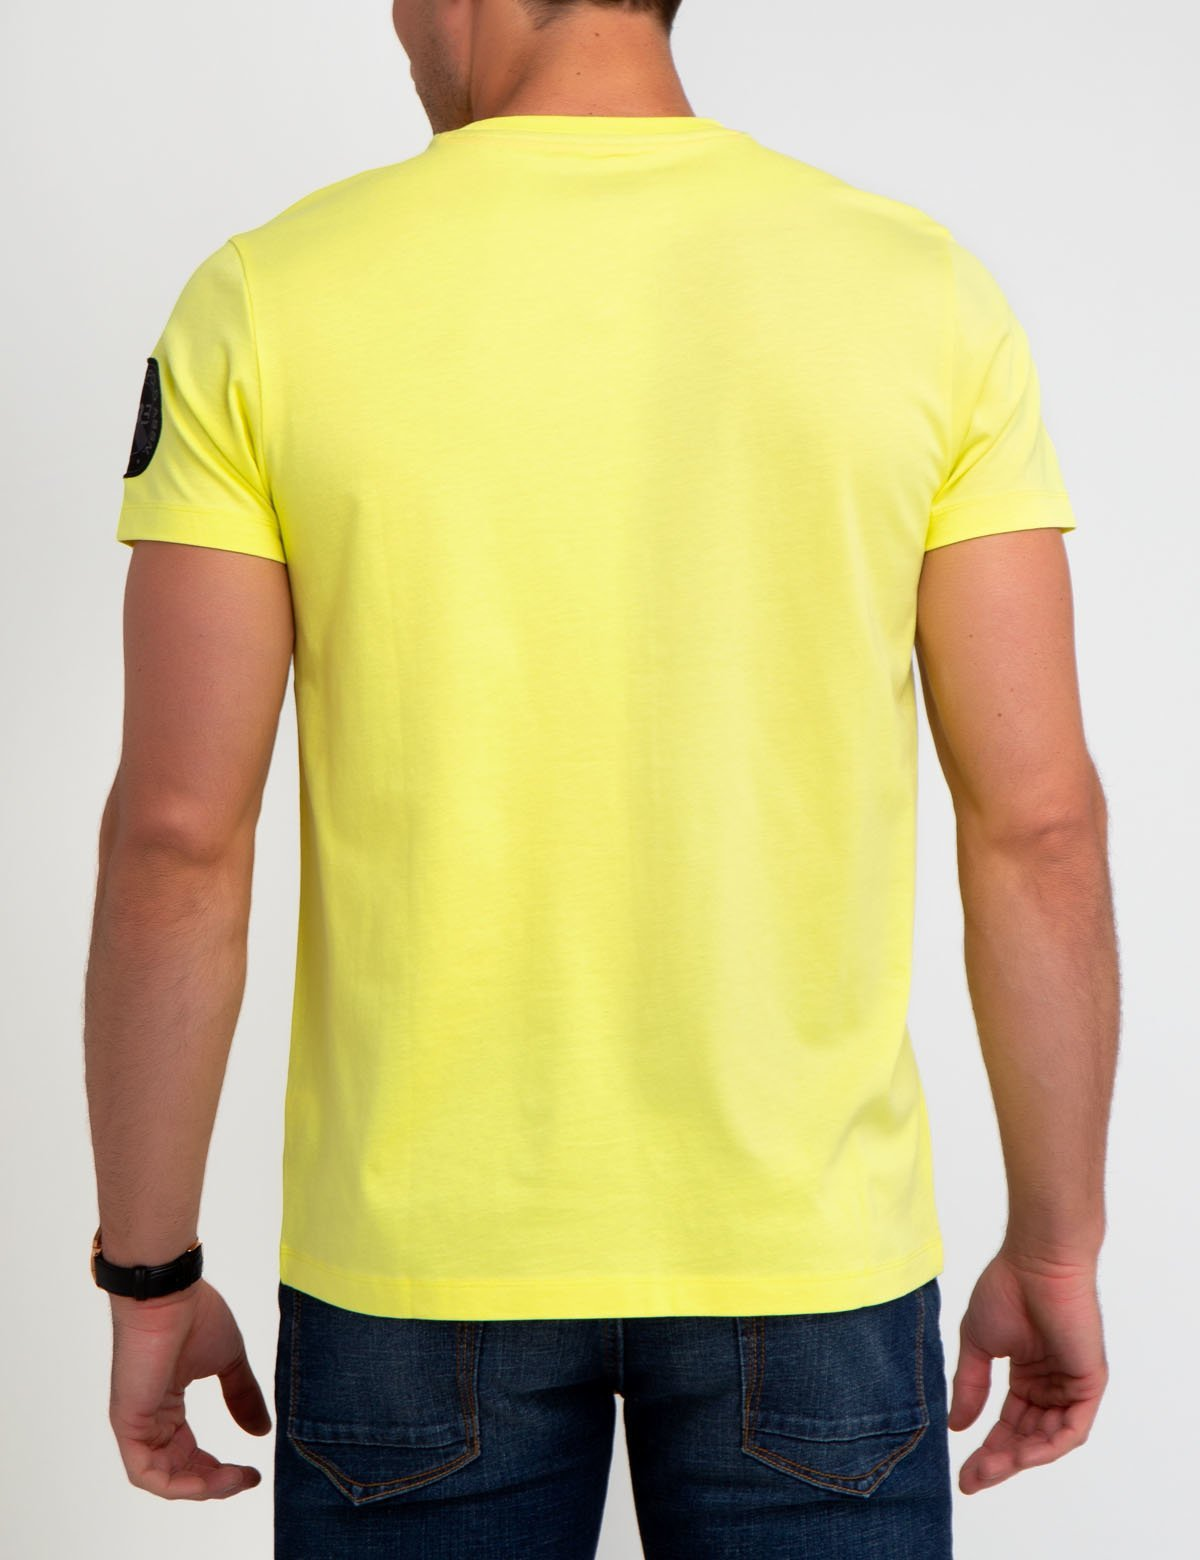 CHEST STRIPE T-SHIRT - U.S. Polo Assn.